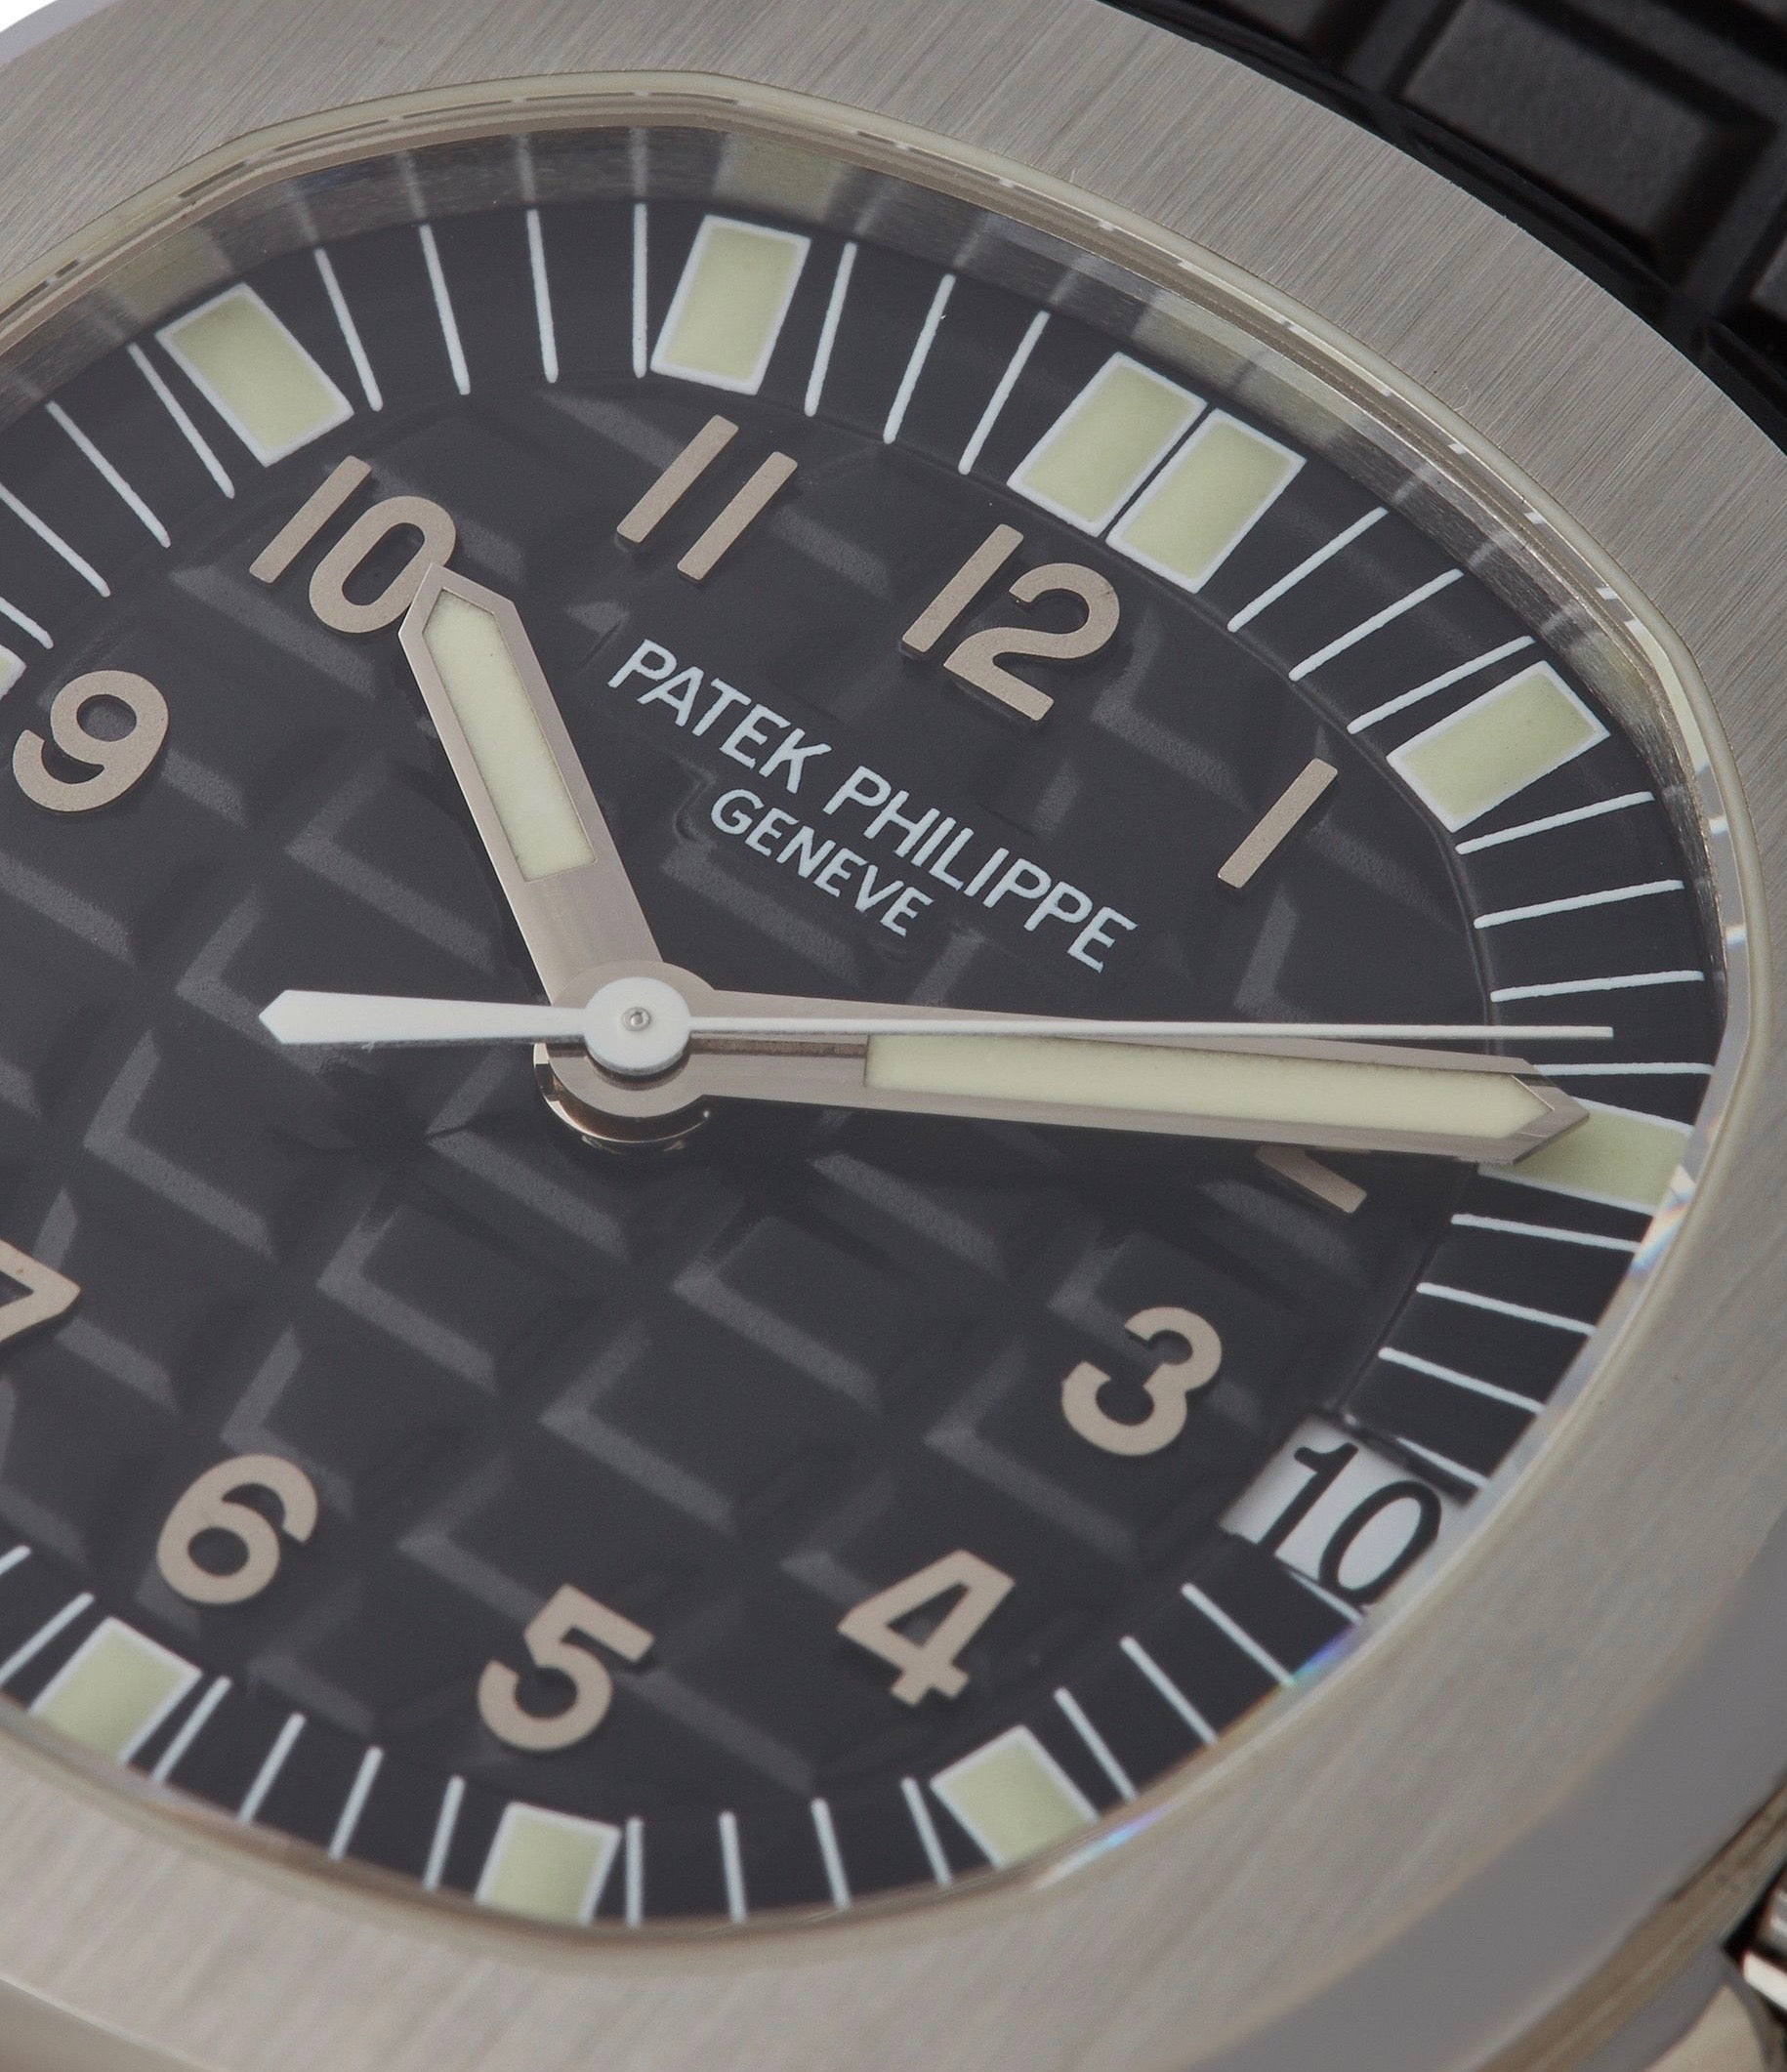 Patek Philippe 5065 Aquanaut macro shot with superluminova lume for A Collected Man London